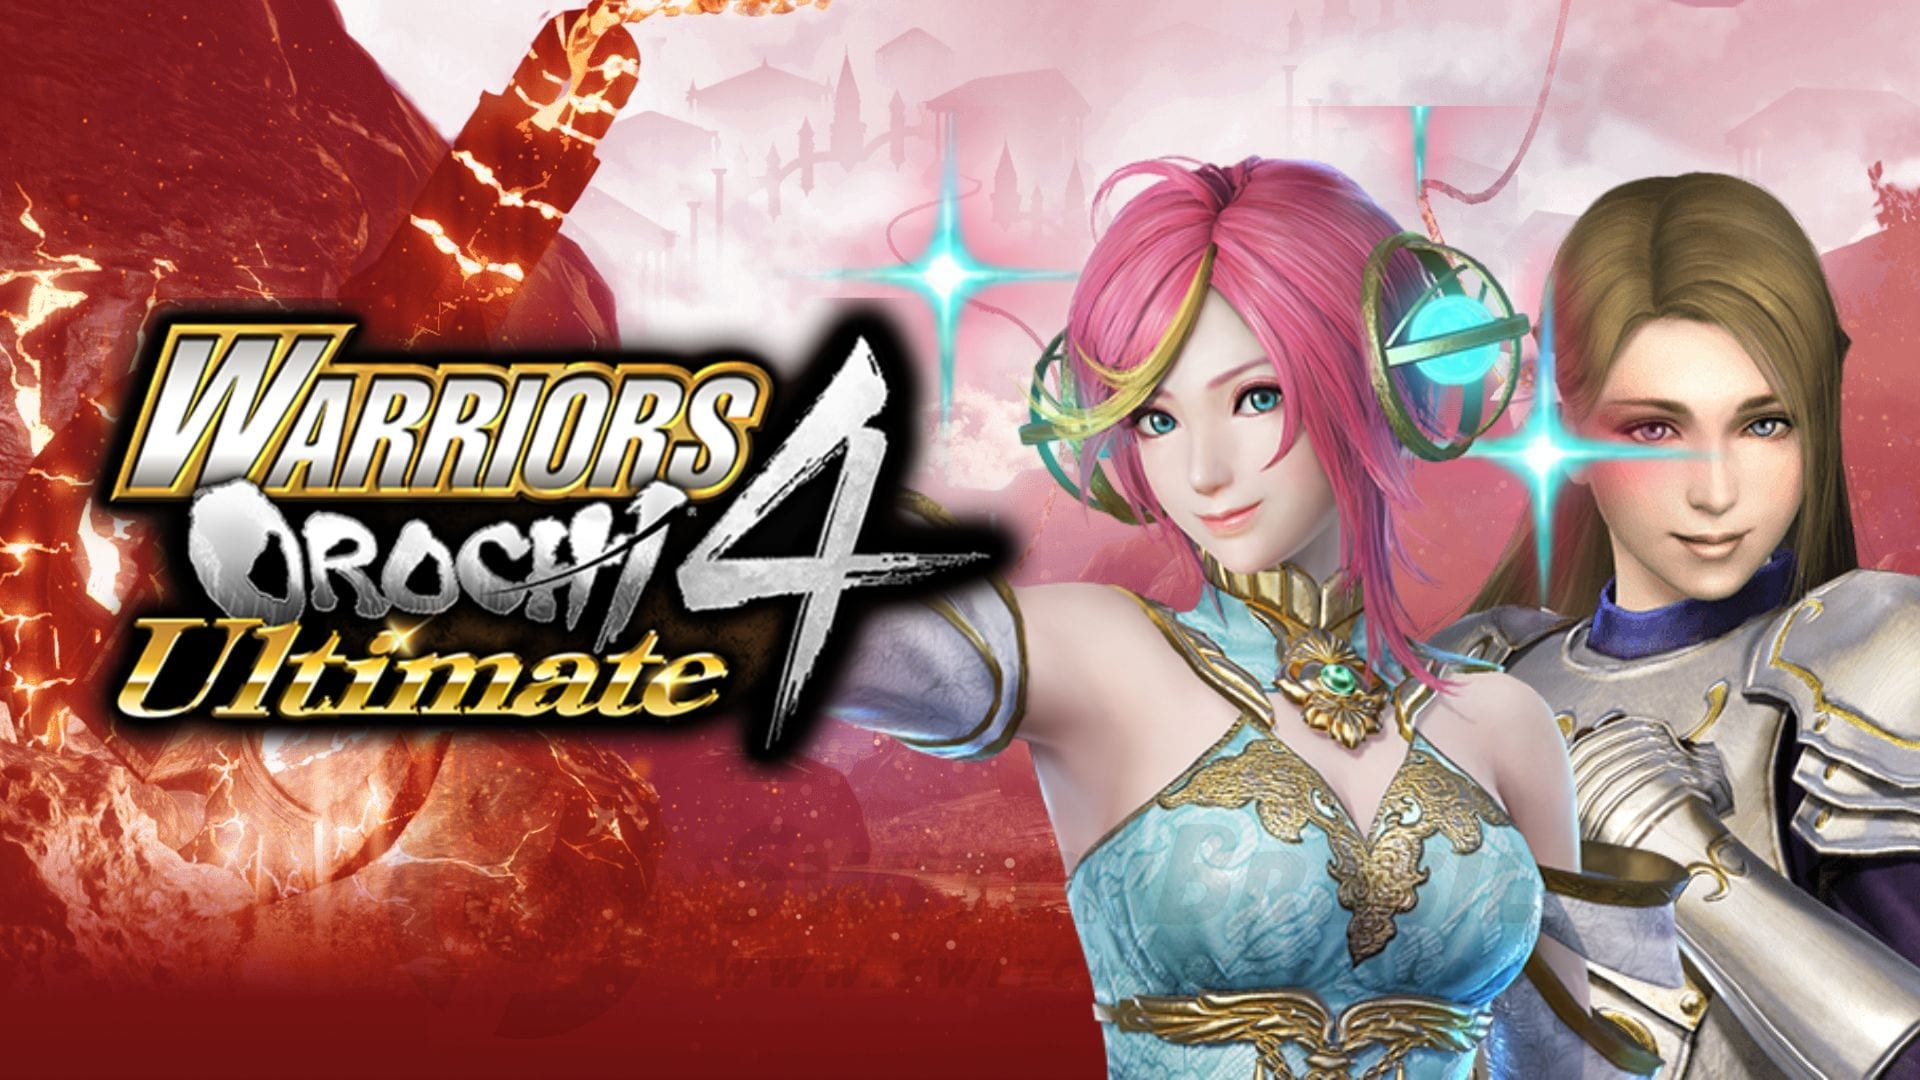 Warriors Orochi 4 Ultimate Releases Today In Australia